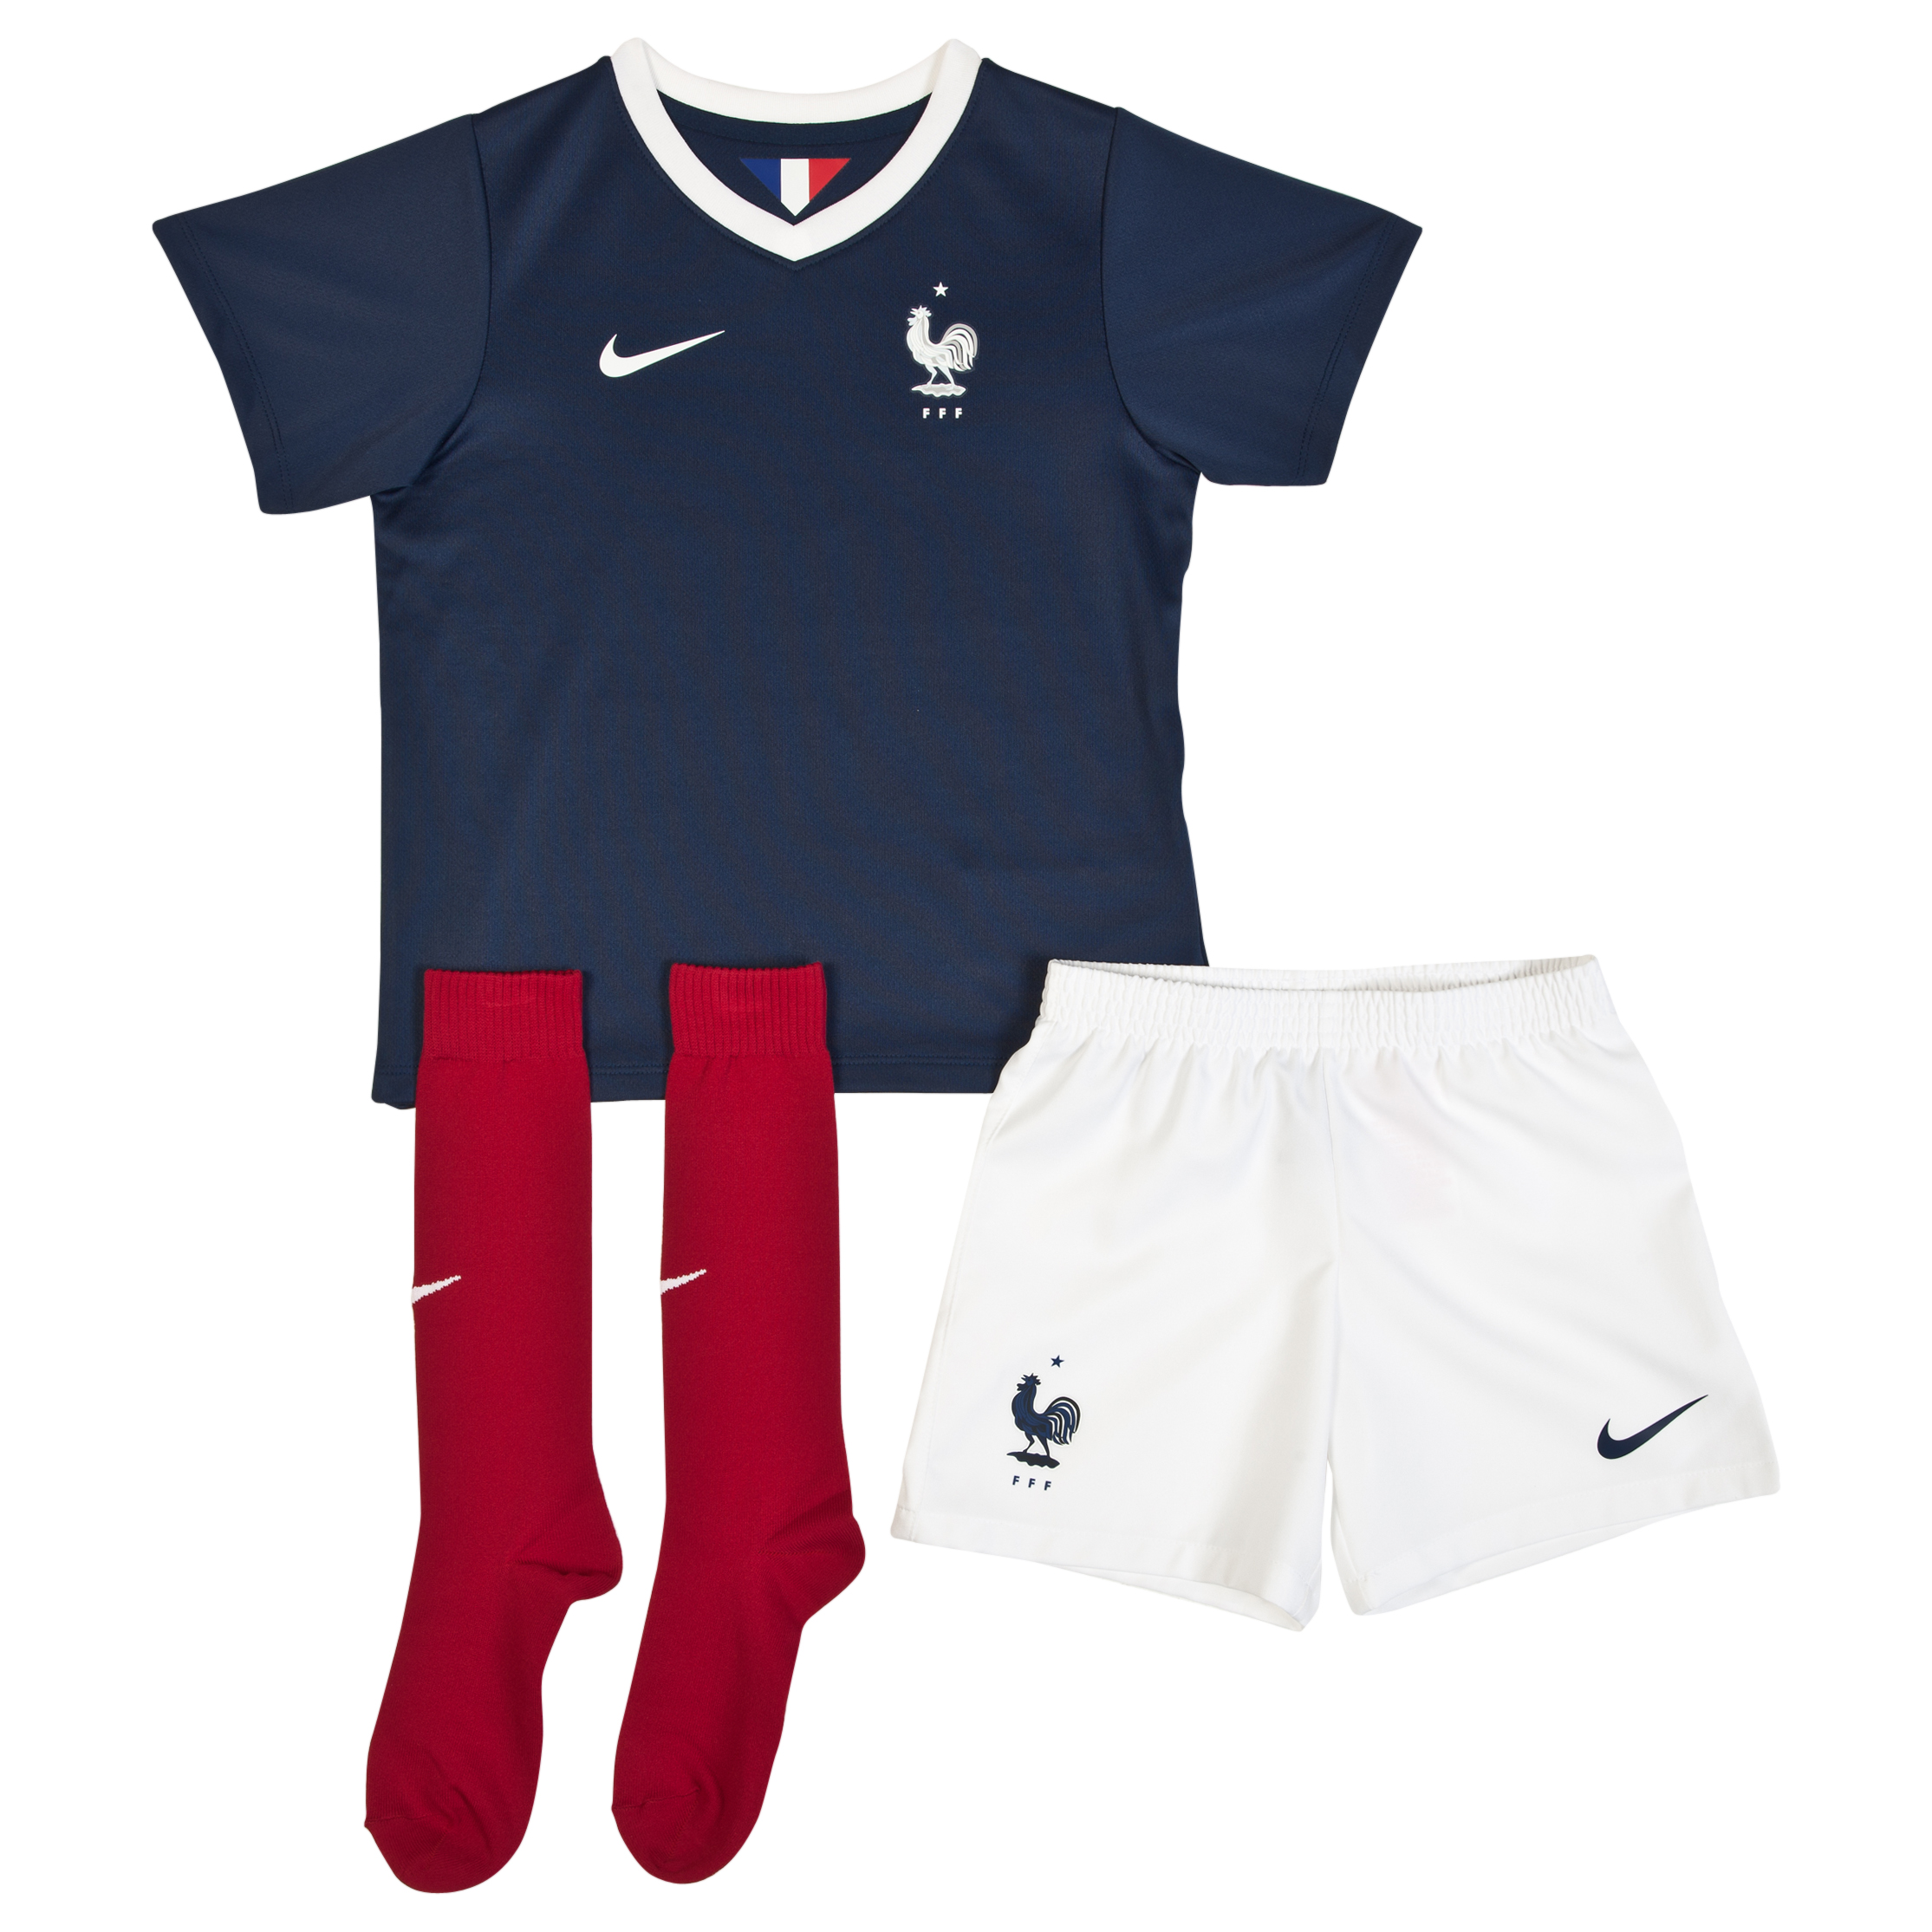 France Home Kit 2014/15 - Little Boys Navy